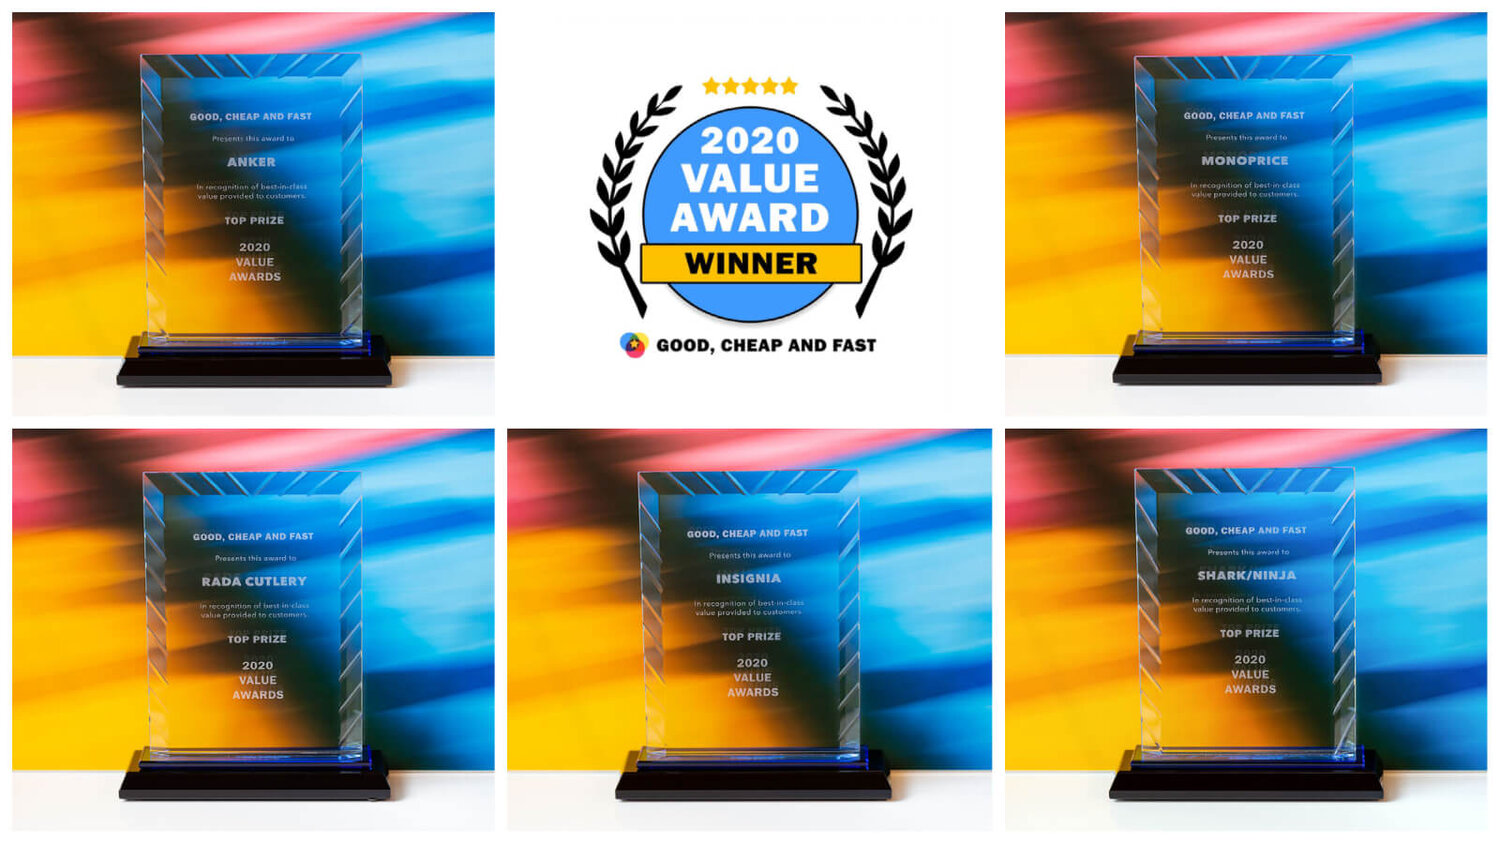 Good, Cheap and Fast's 2020 Value Award Winners